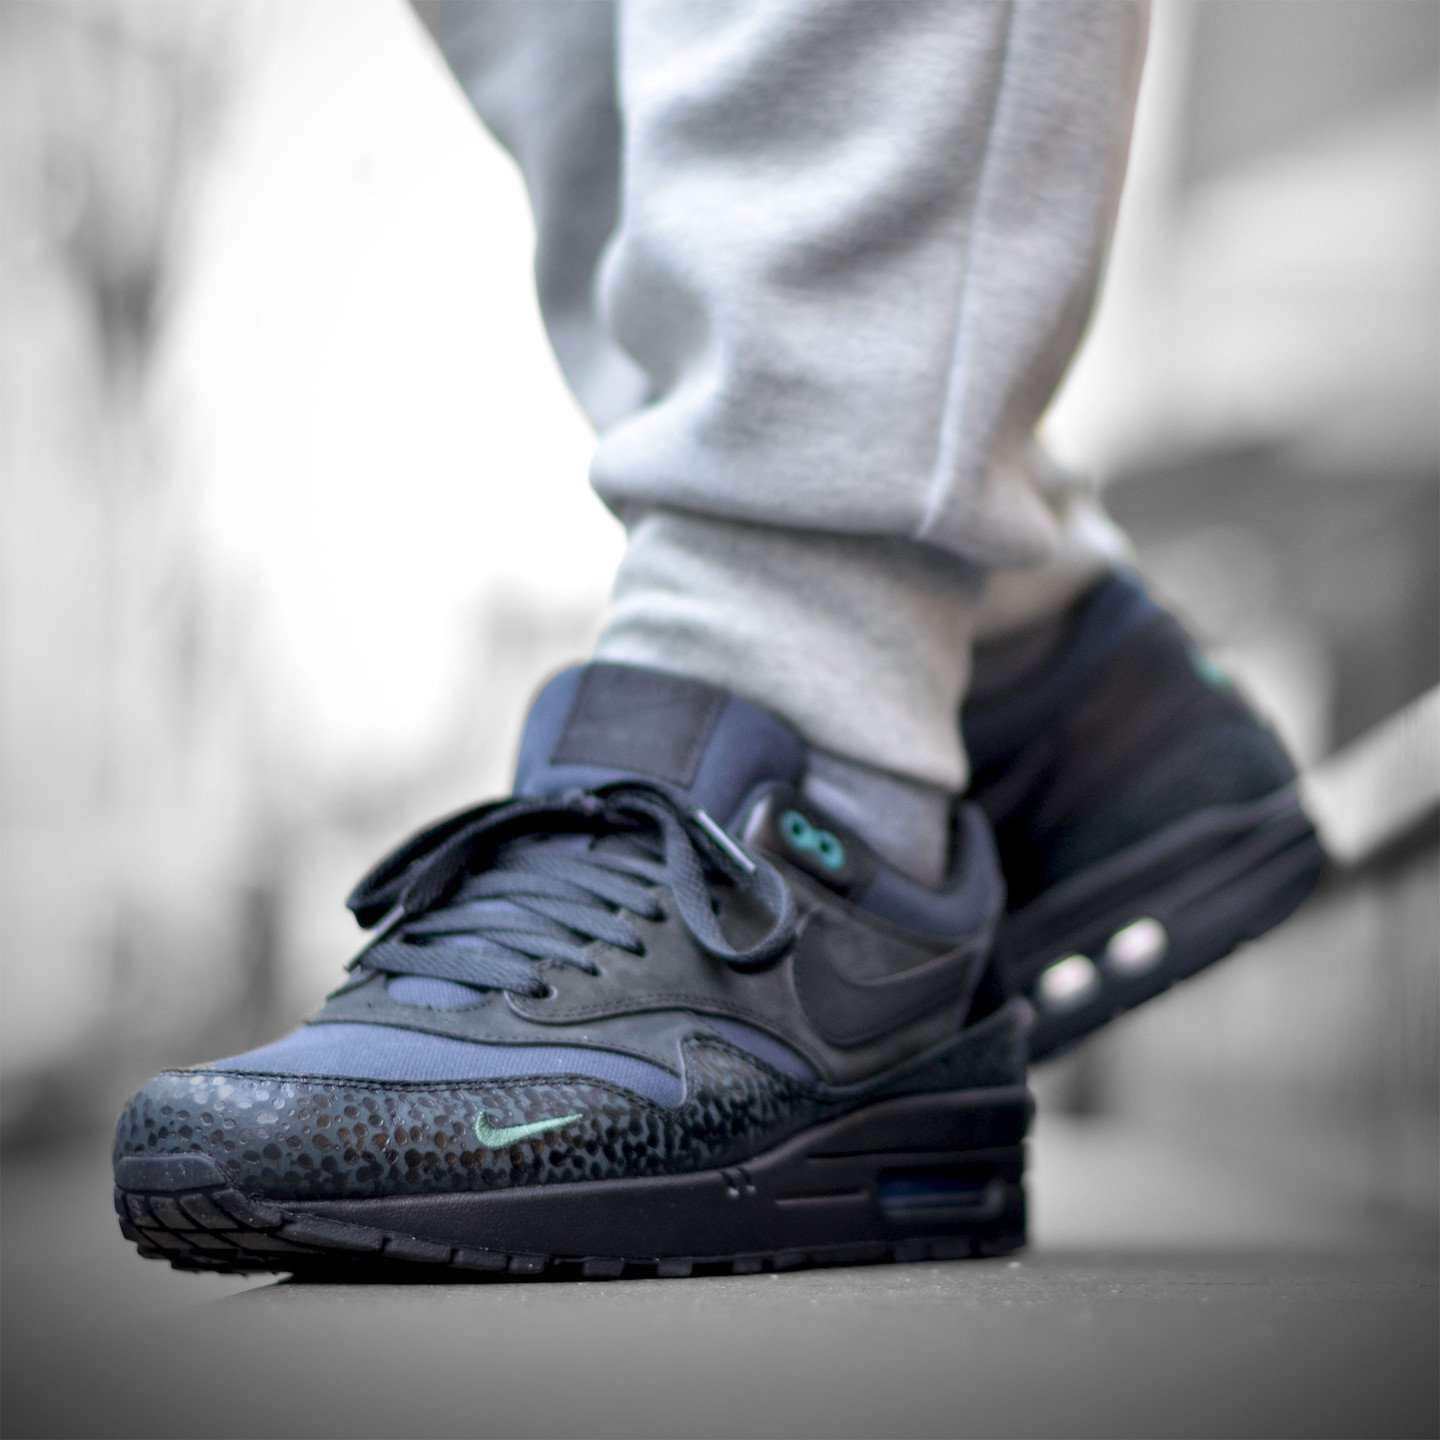 Nike Air Max 1 Premium 'Bonsai Safari' Black / Black / Bonsai 512033-030-43